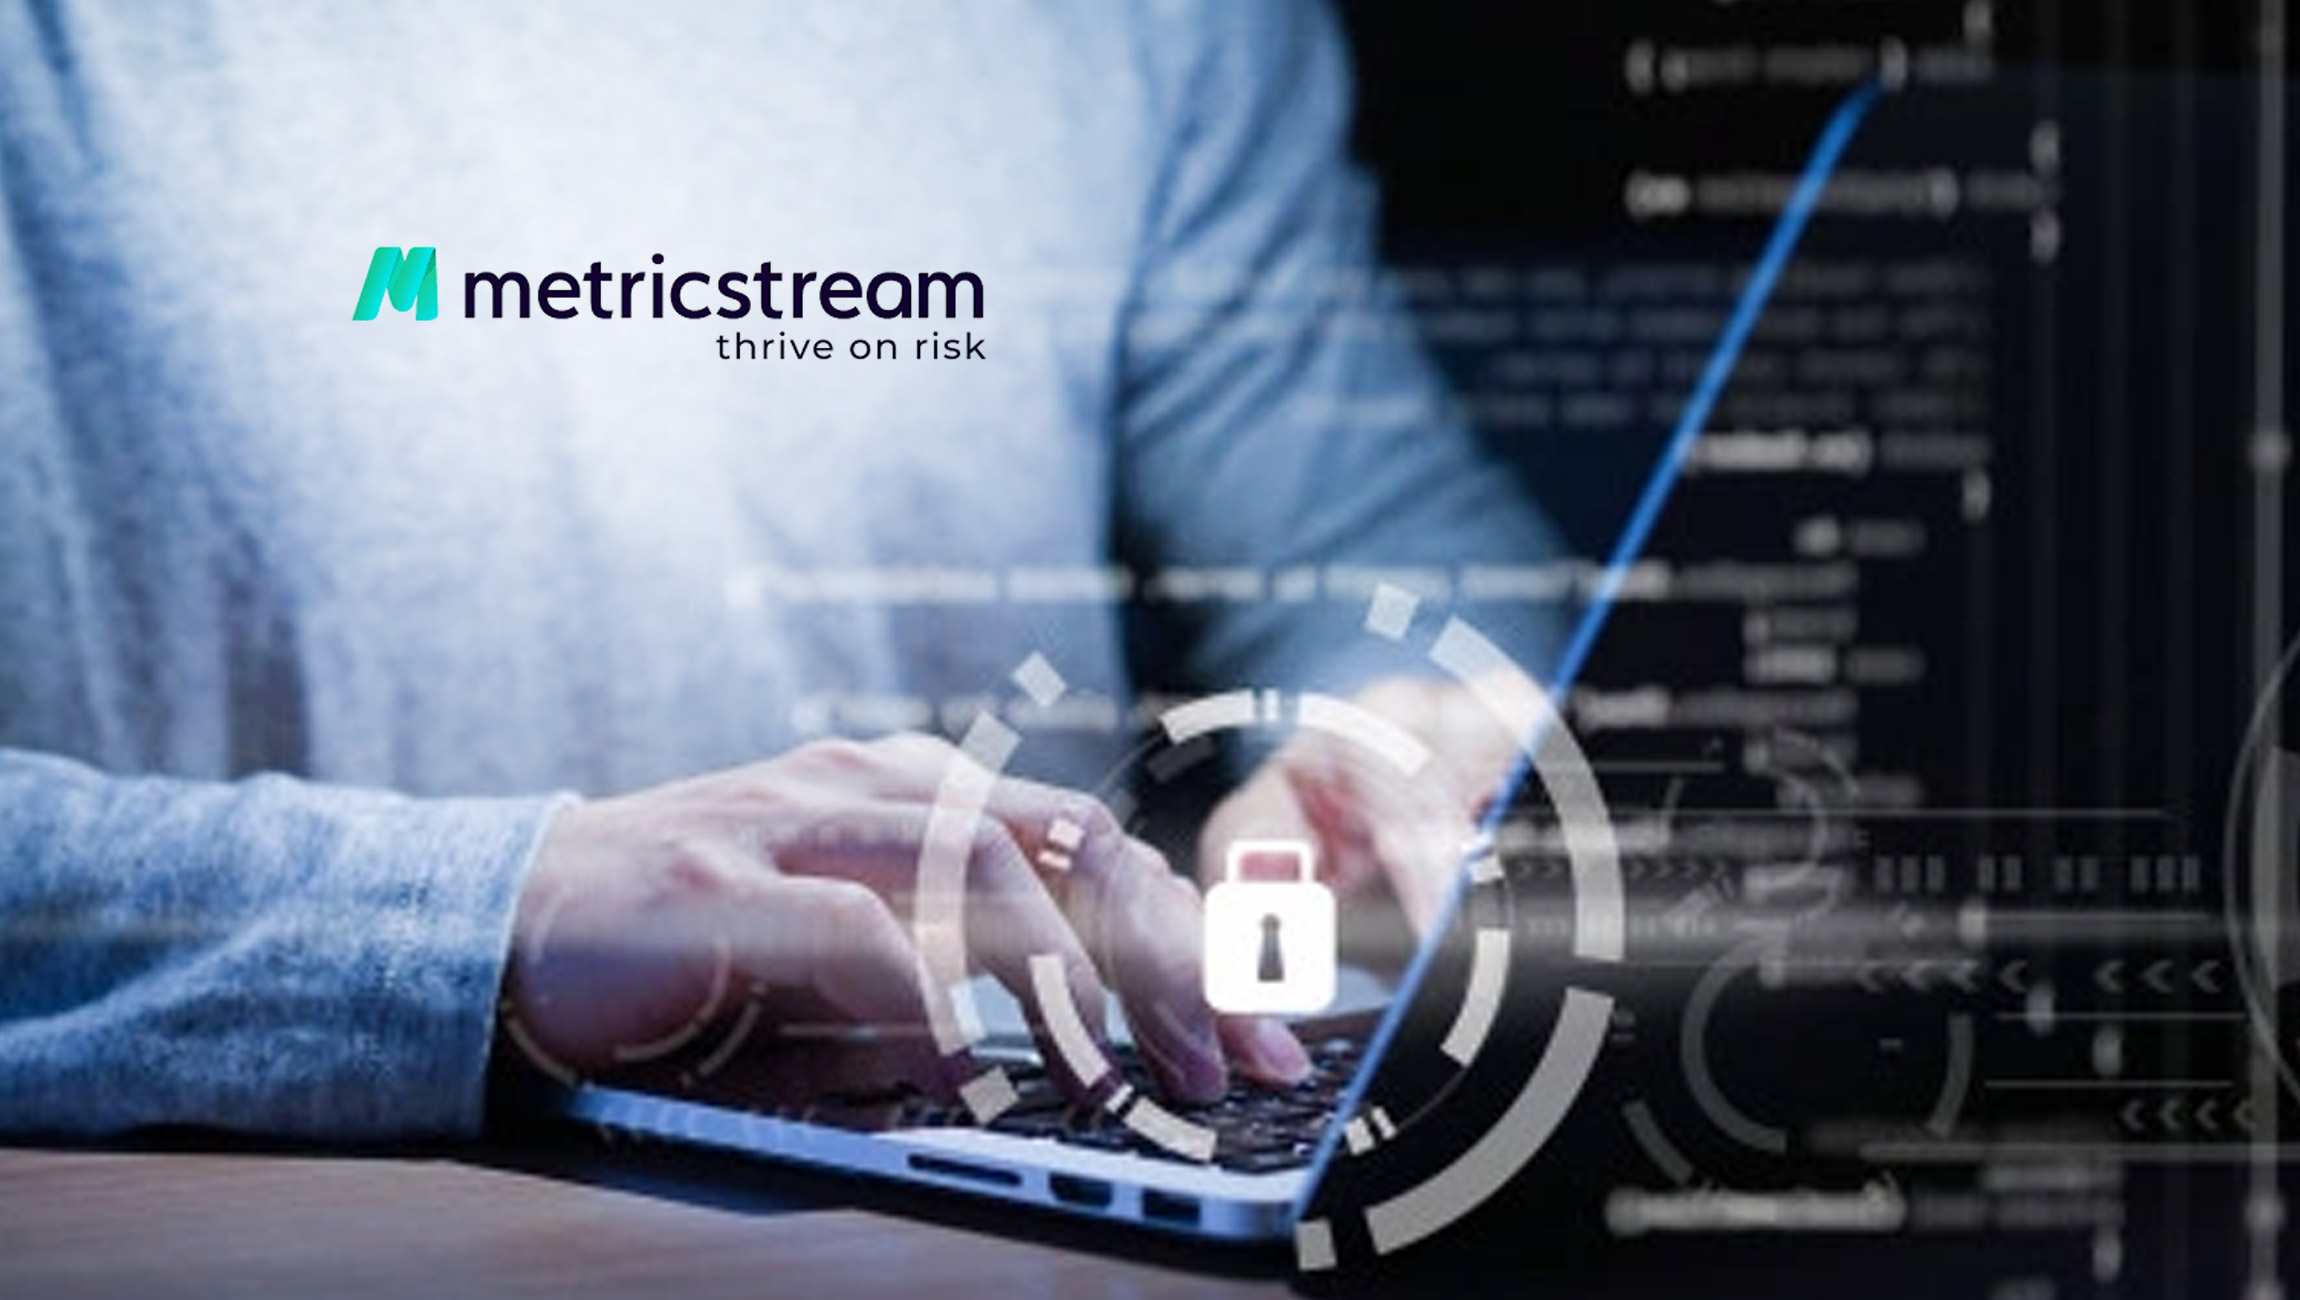 MetricStream Recognized as a Leader in the 2021 Gartner® Magic Quadrant™ for IT Risk Management Tools